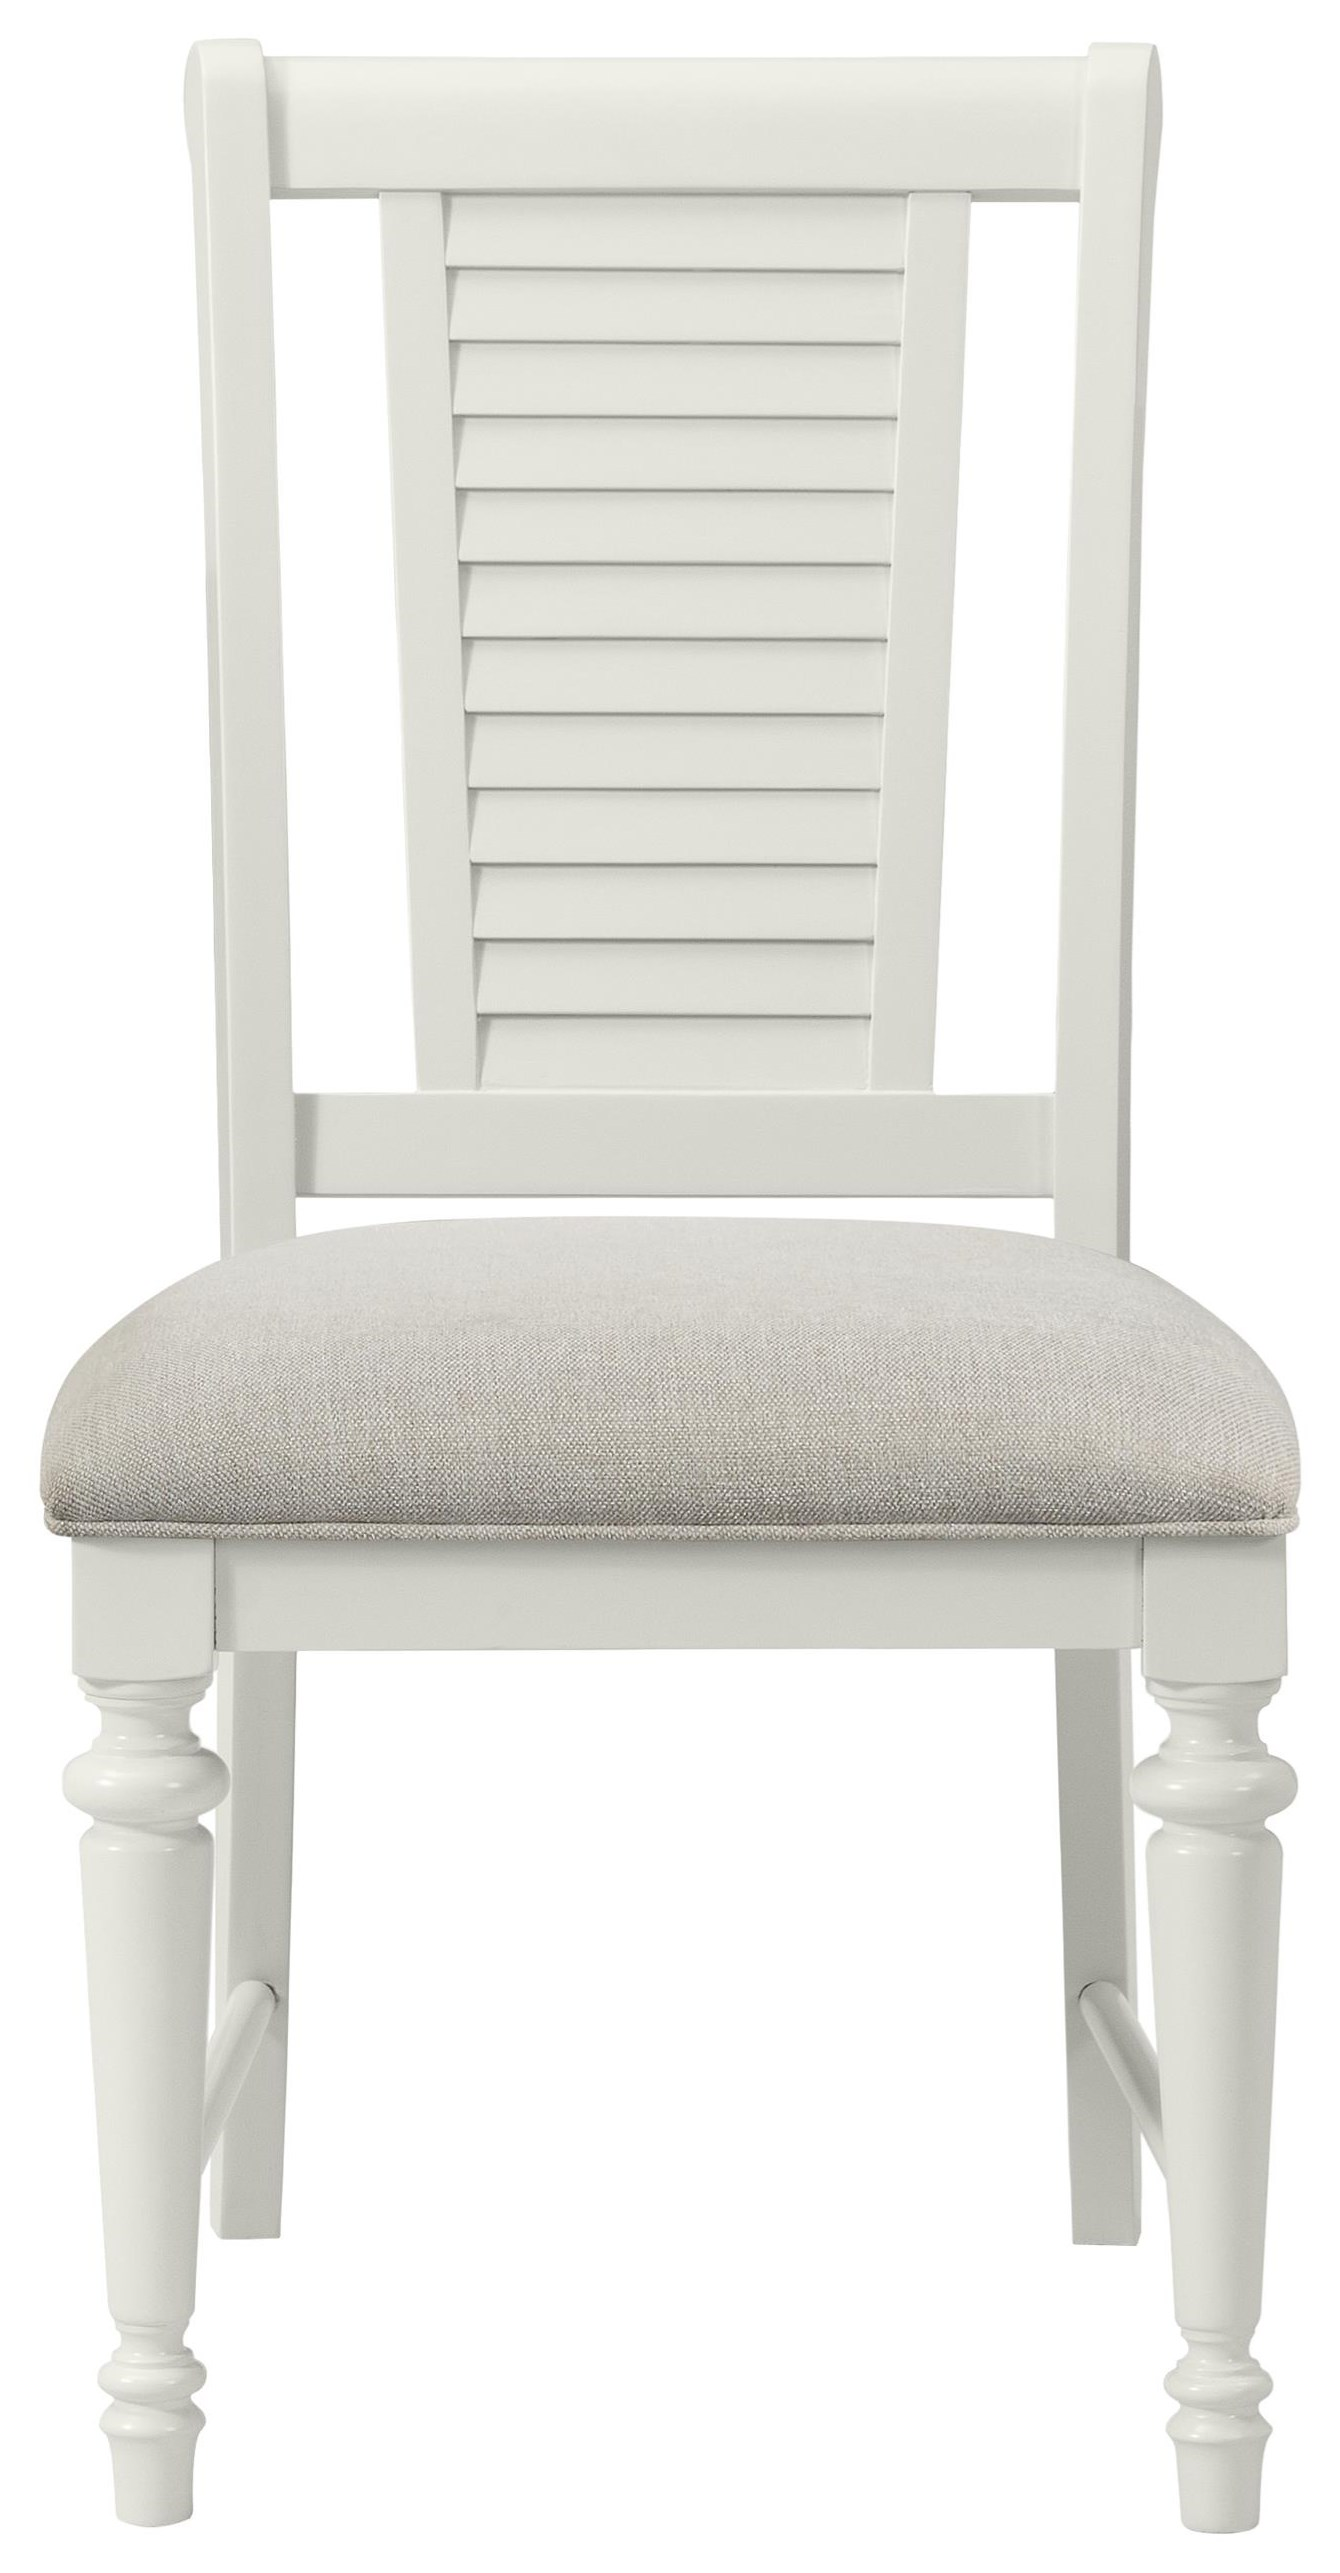 Harbortown Upholstered Side Chair by Stillwater Furniture at Baer's Furniture